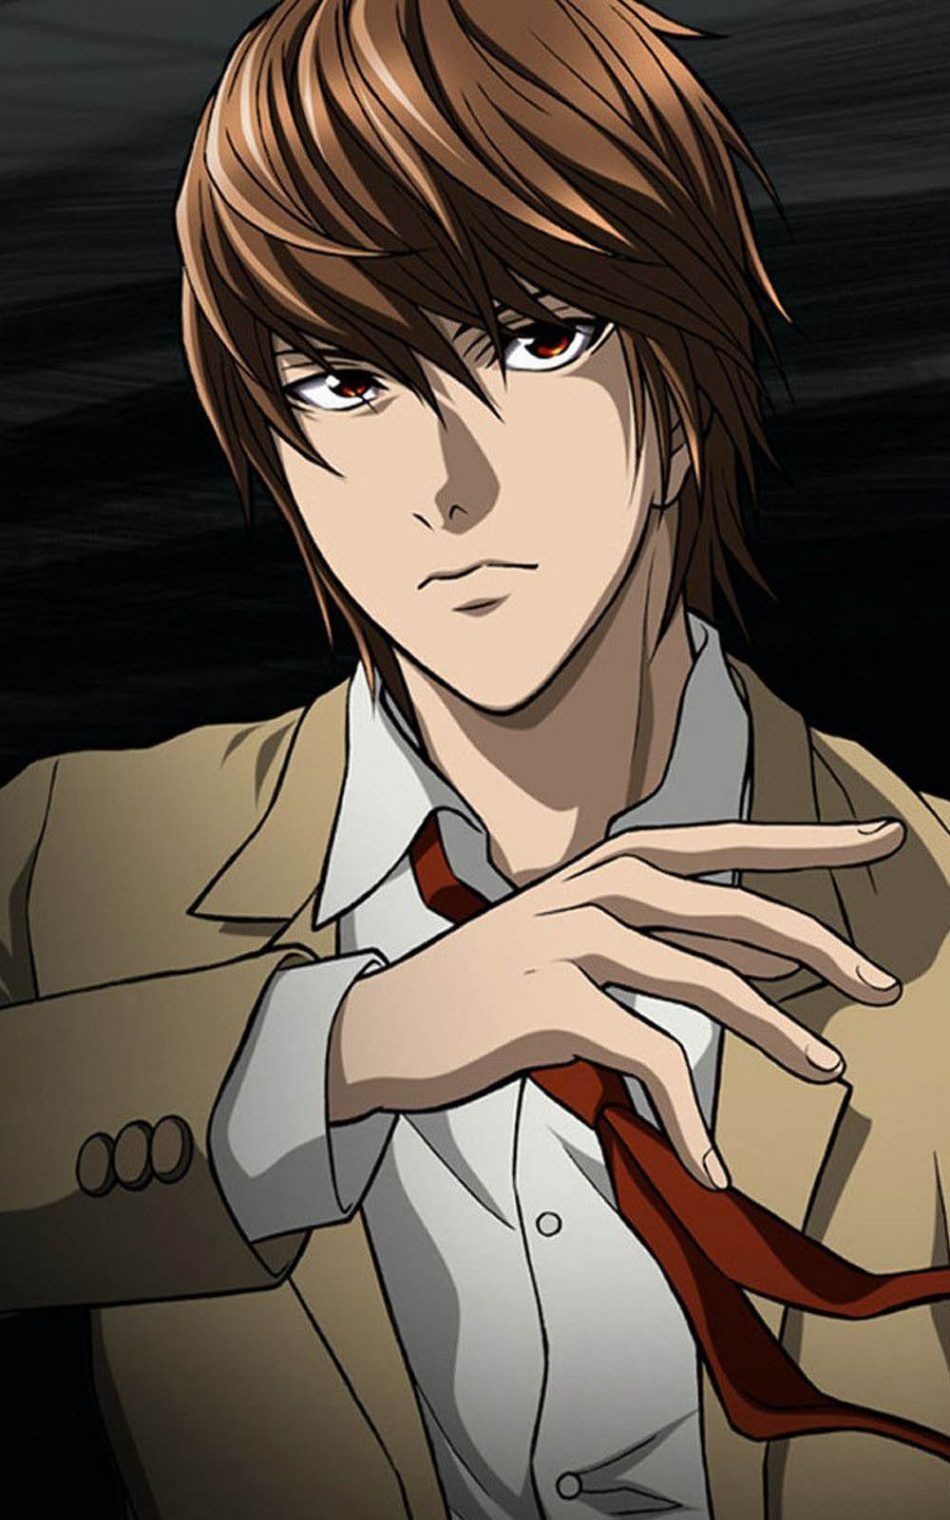 Pin By Background For Phone On Light Yagami Wallpapers In 2021 Light Yagami Anime Wallpaper Death note anime hd wallpaper